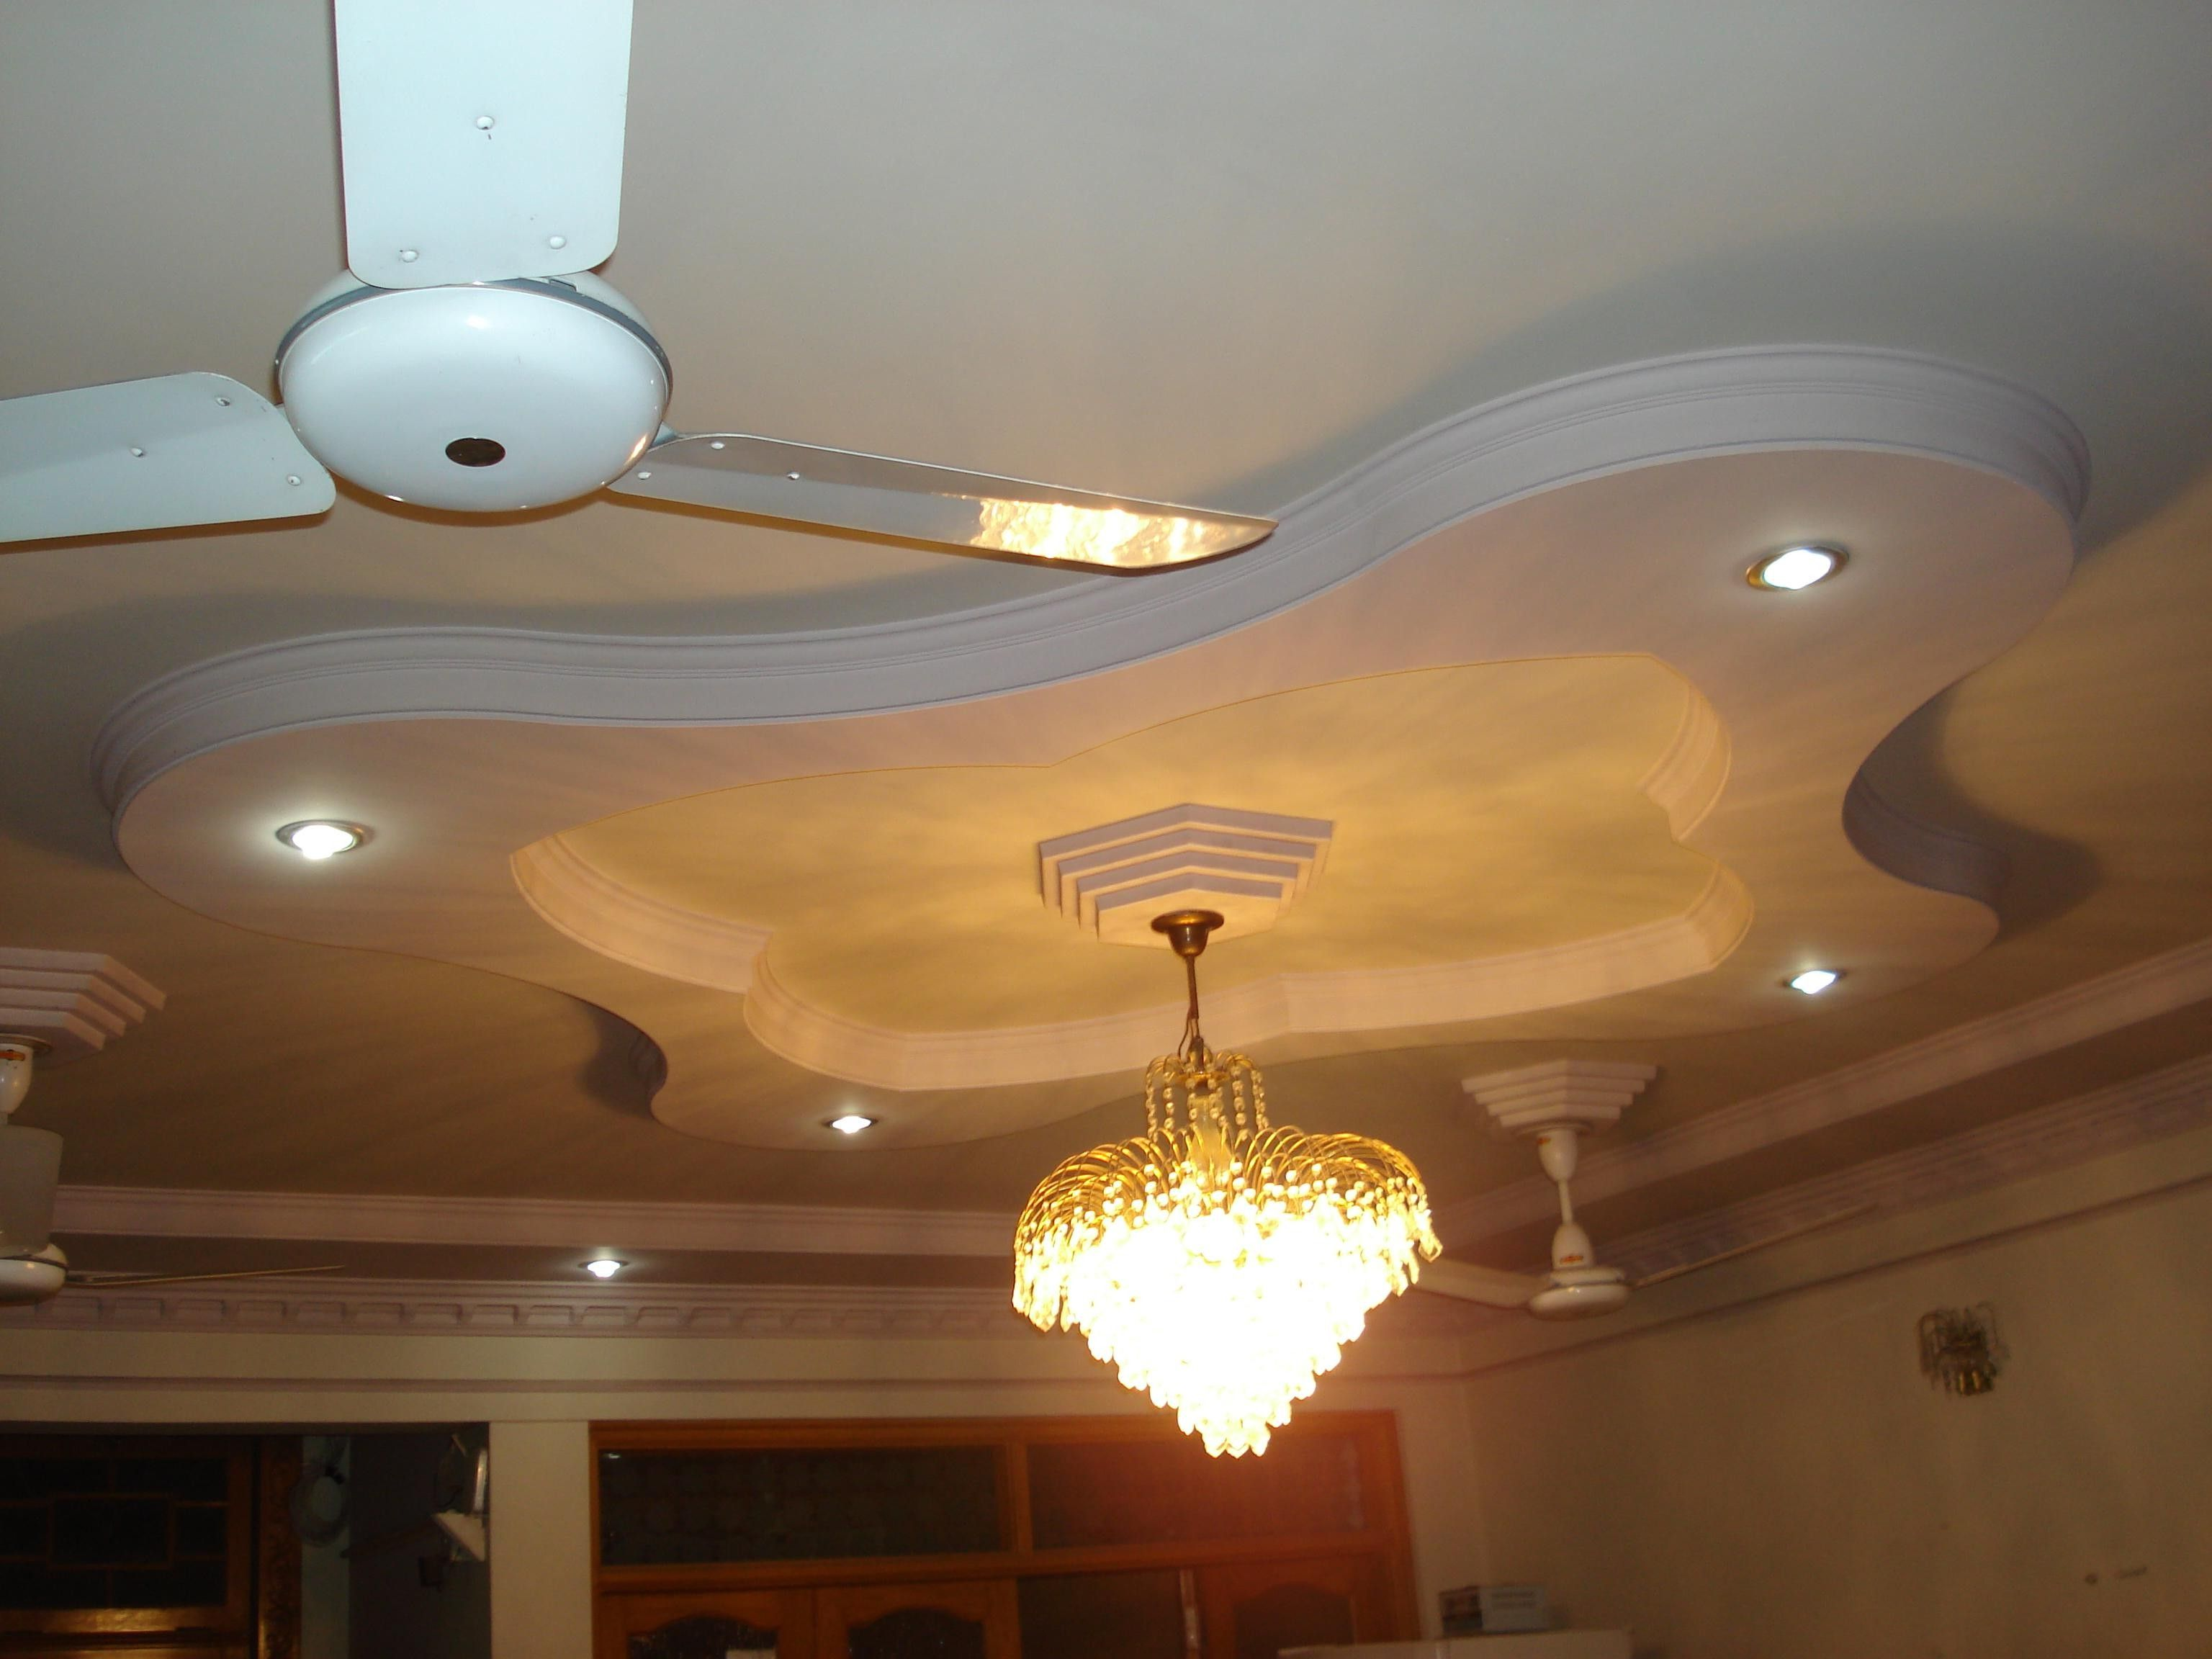 Pop Ceiling Design For Hall With 2 Fans Wallpaperall Pop